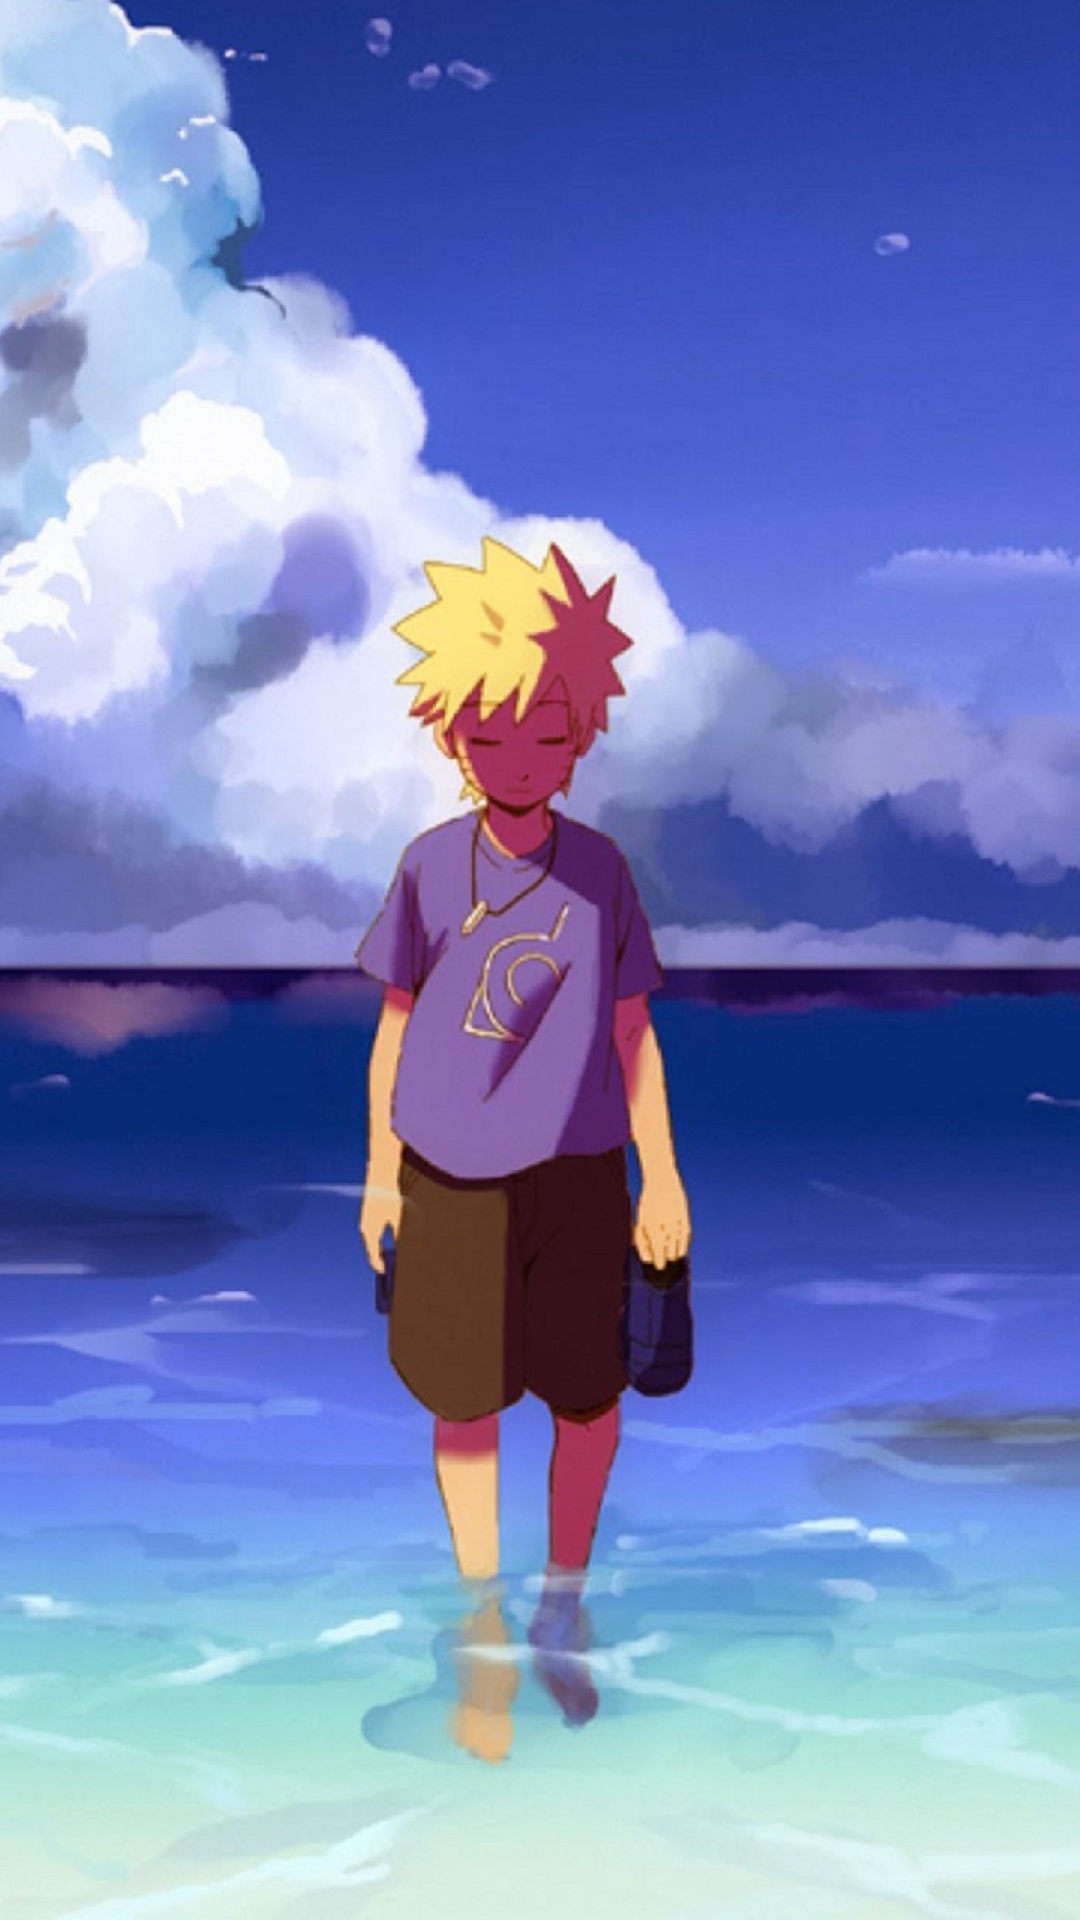 Wallpaper Naruto For Iphone